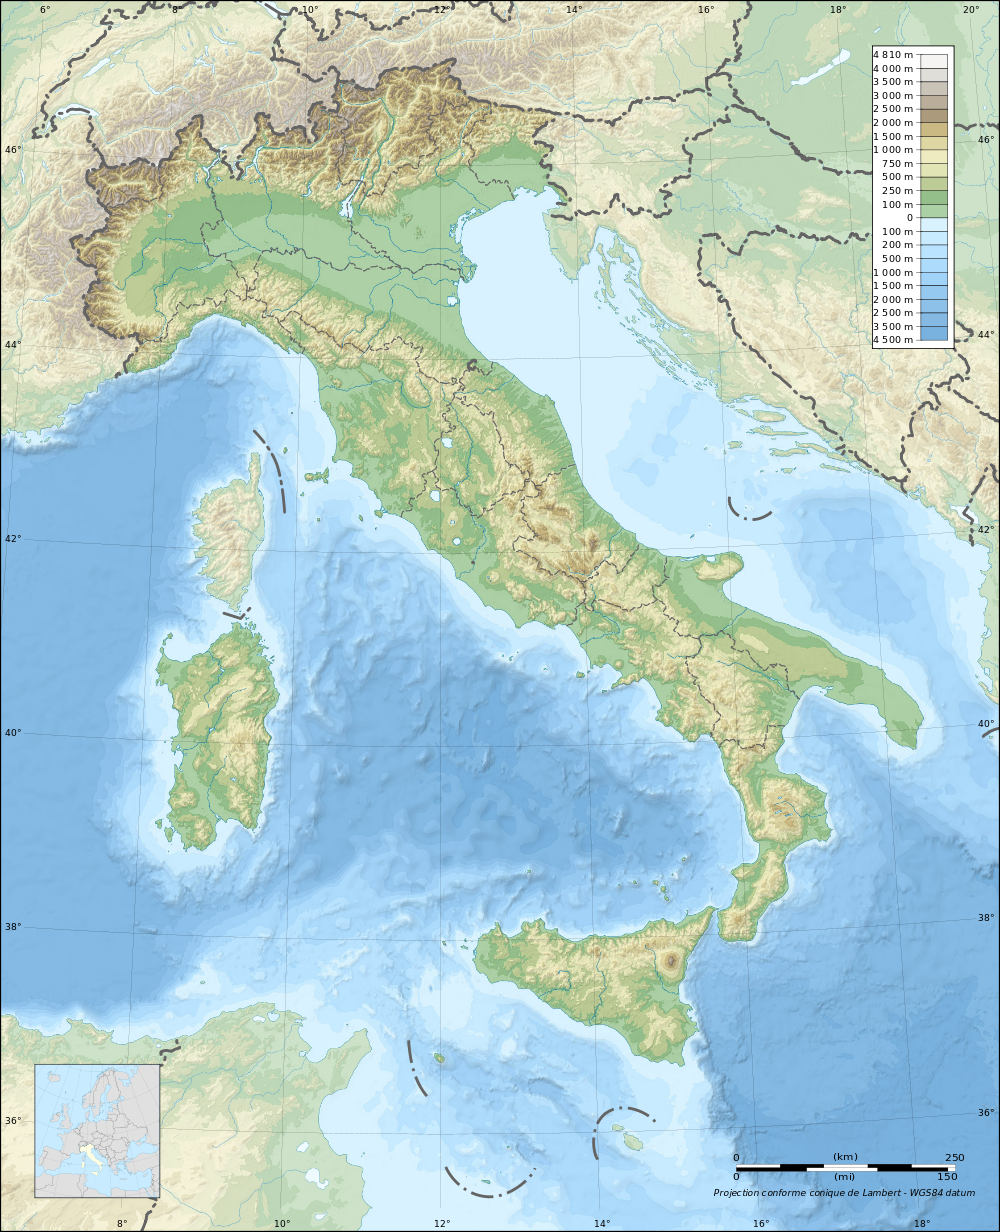 Topographic Map Of Rome.Topographic Map Of Italy Italy Italy Italia Italy Map